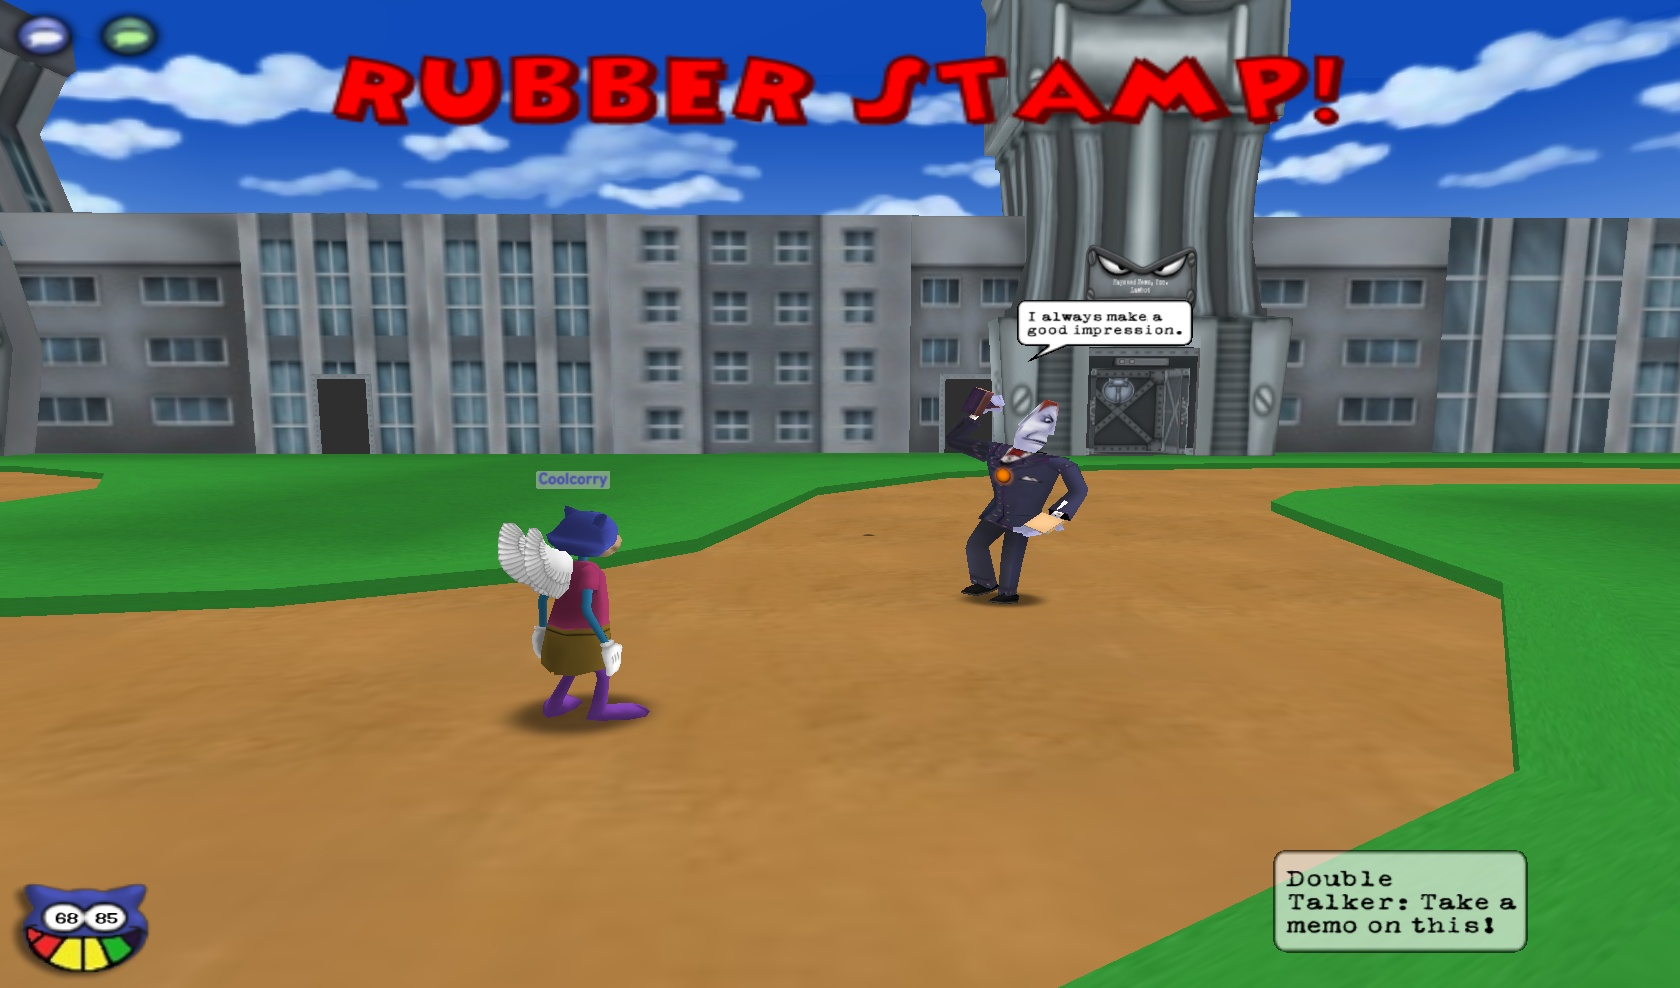 Rubber Stamp | Toontown Wiki | FANDOM powered by Wikia